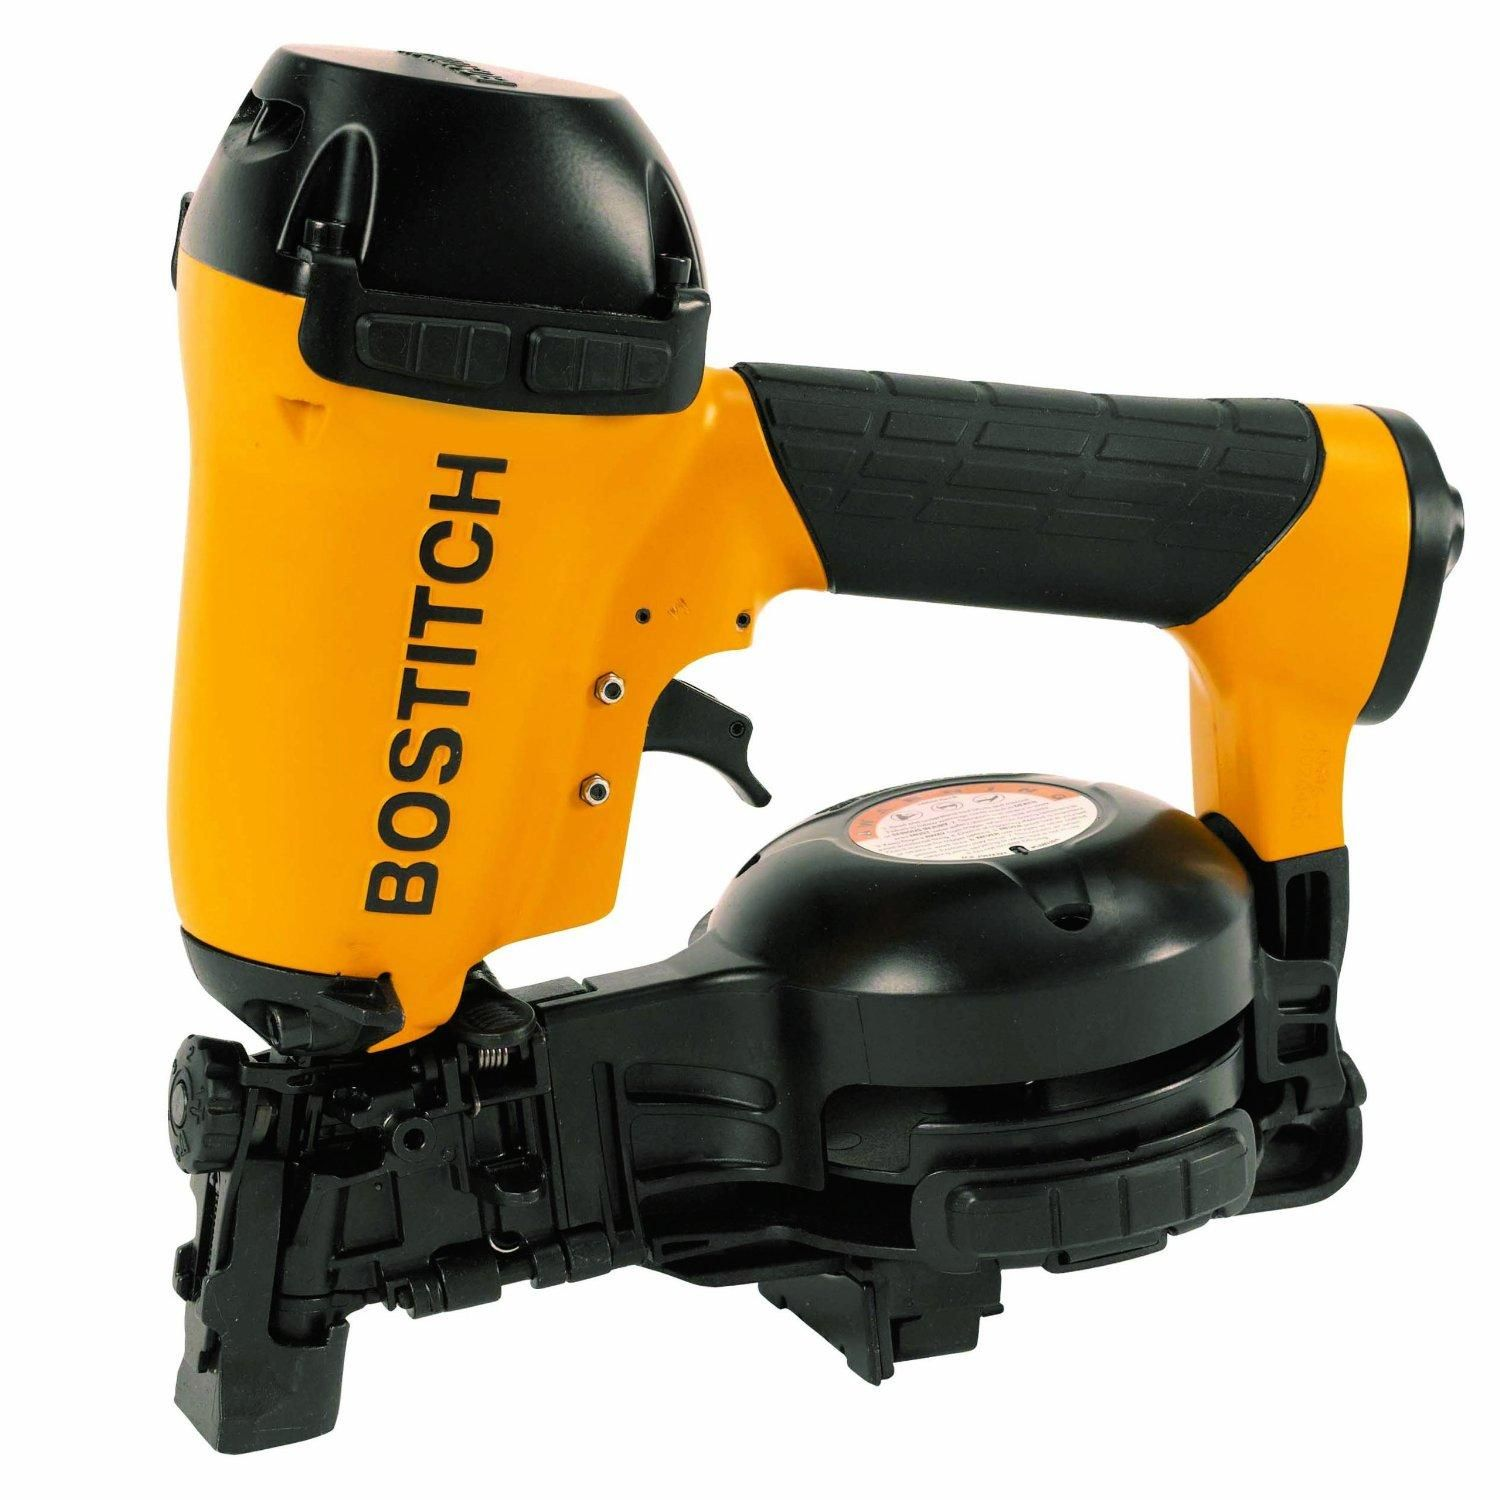 Home Depot Roofing Nailer In 2020 Roofing Nailer Roofing Roofing Nails